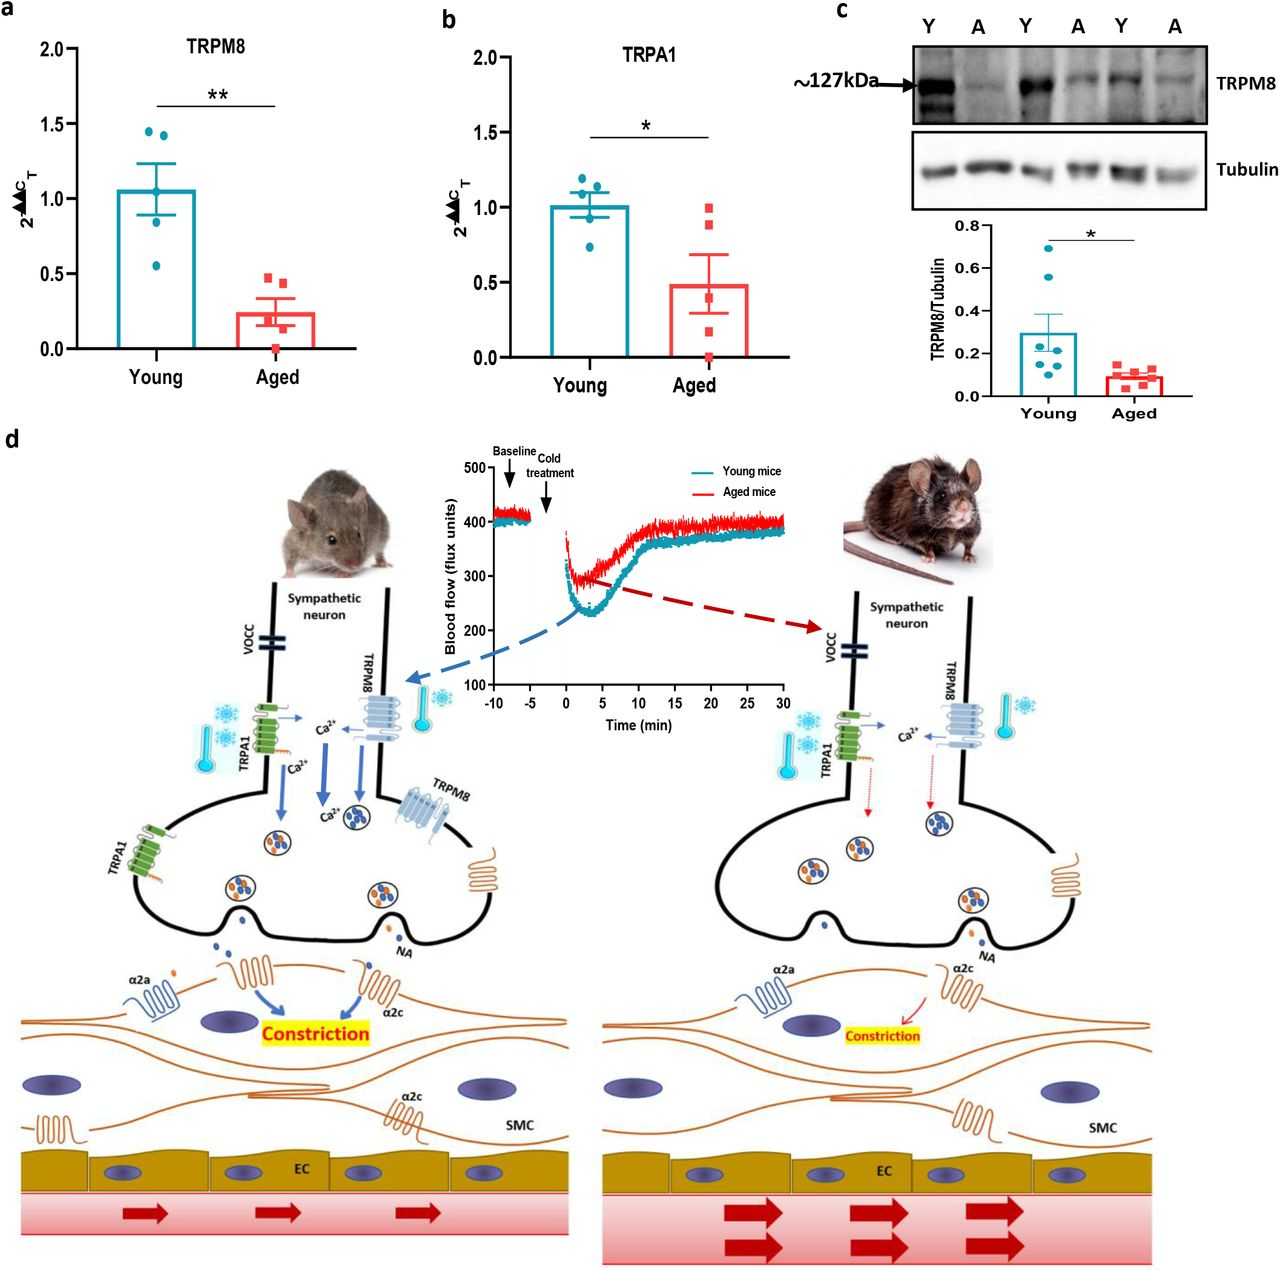 Sympathetic-sensory signalling and influence of ageing (a-b) RT-PCR CT analysis shows the expression and fold change of TRPA1 and TRPM8 in young and aged sympathetic ganglia normalized to three housekeeping genes collected from the cervical and thoracic paravertebral region. (c) The western blot analysis of TRPM8 in sympathetic ganglia of young and aged mice. All results are shown as mean ± s.e.m. *p